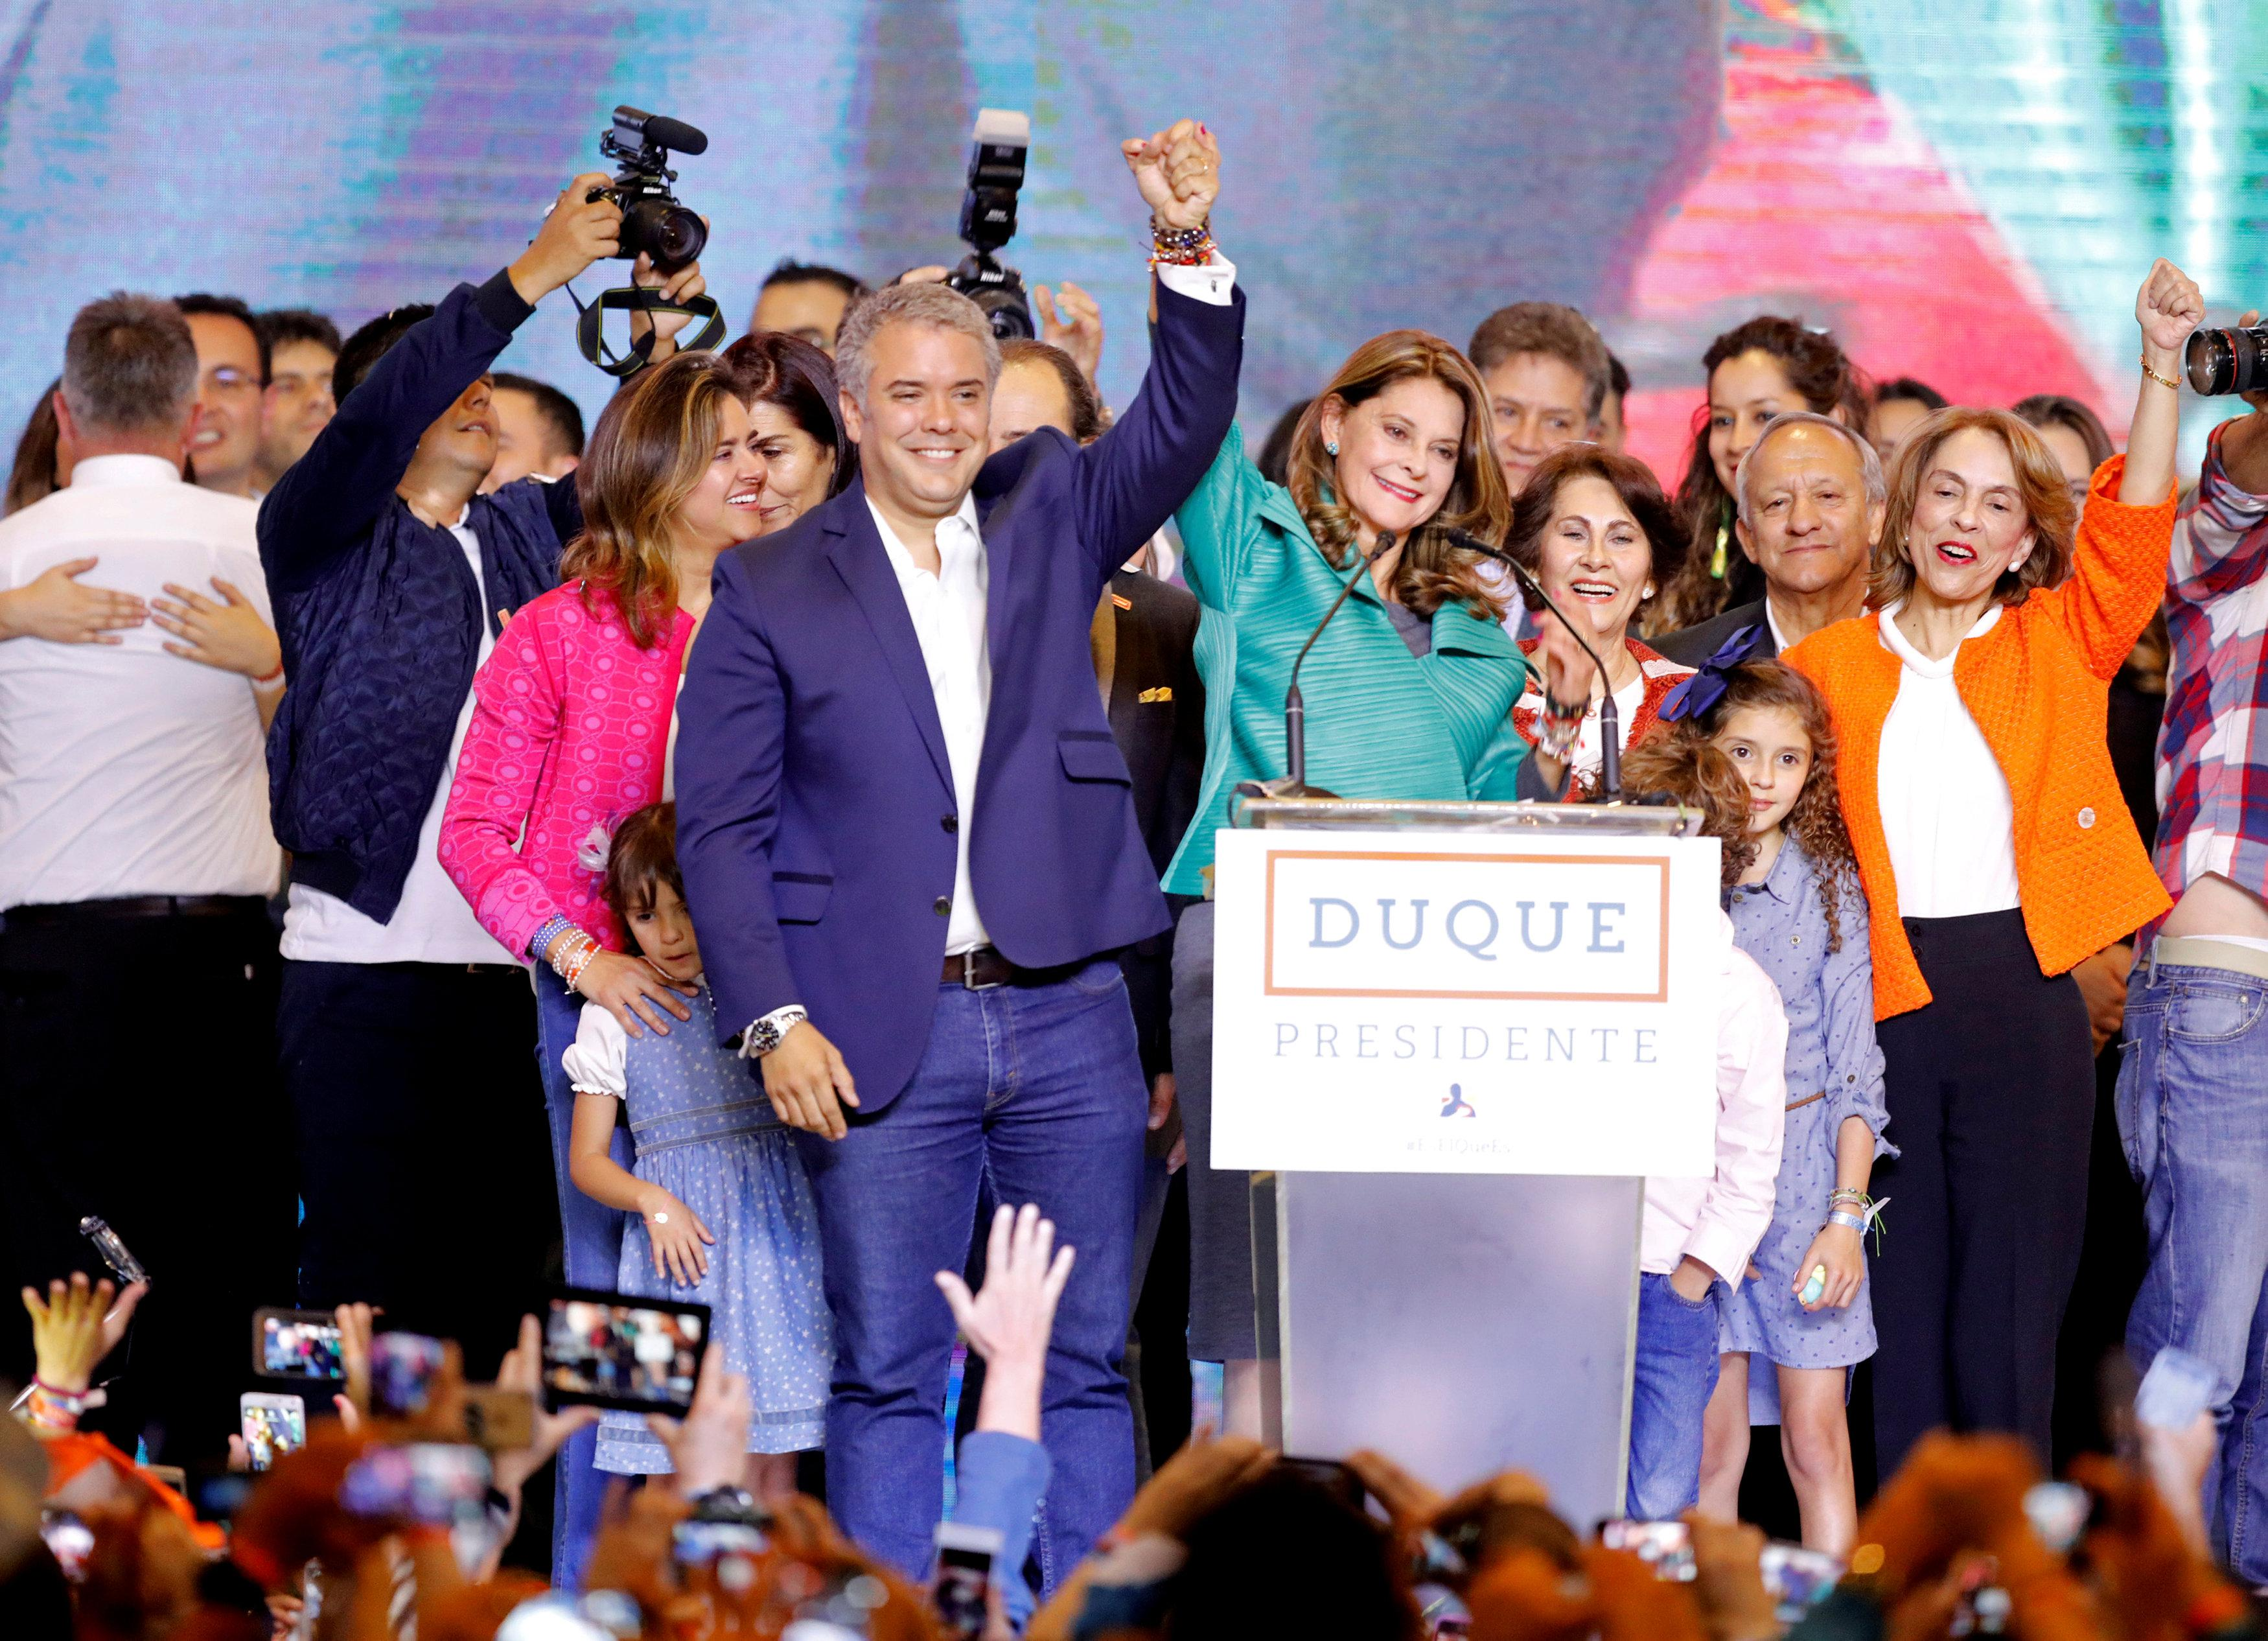 Presidential candidate Ivan Duque and his candidate for Vice President Marta Lucia Ramirez celebrate after he won the presidential election in Bogota, Colombia, June 17, 2018.  Andres Stapff